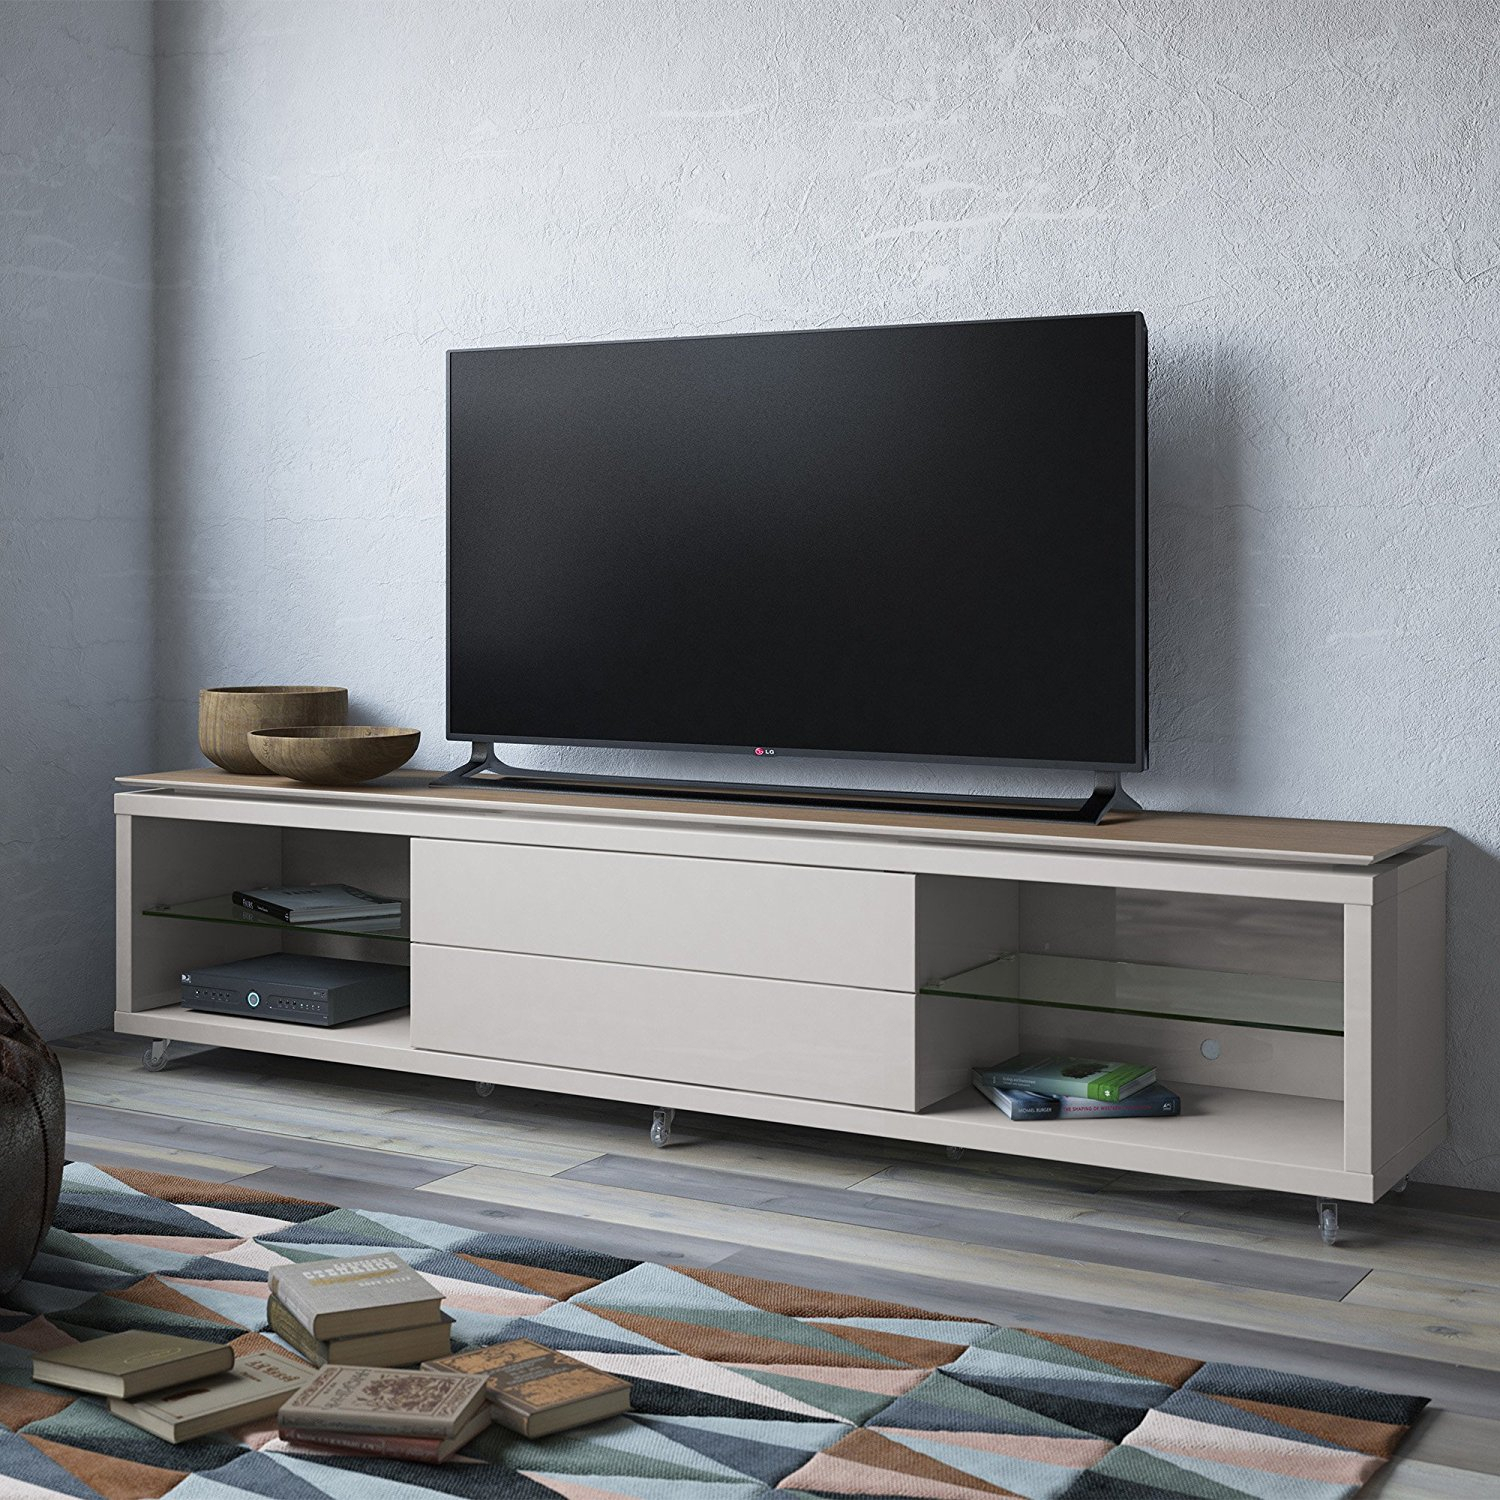 Furniture: Annabelle Black 70 Inch Tv Stand | Living Spaces Pertaining To Annabelle Cream 70 Inch Tv Stands (View 3 of 30)